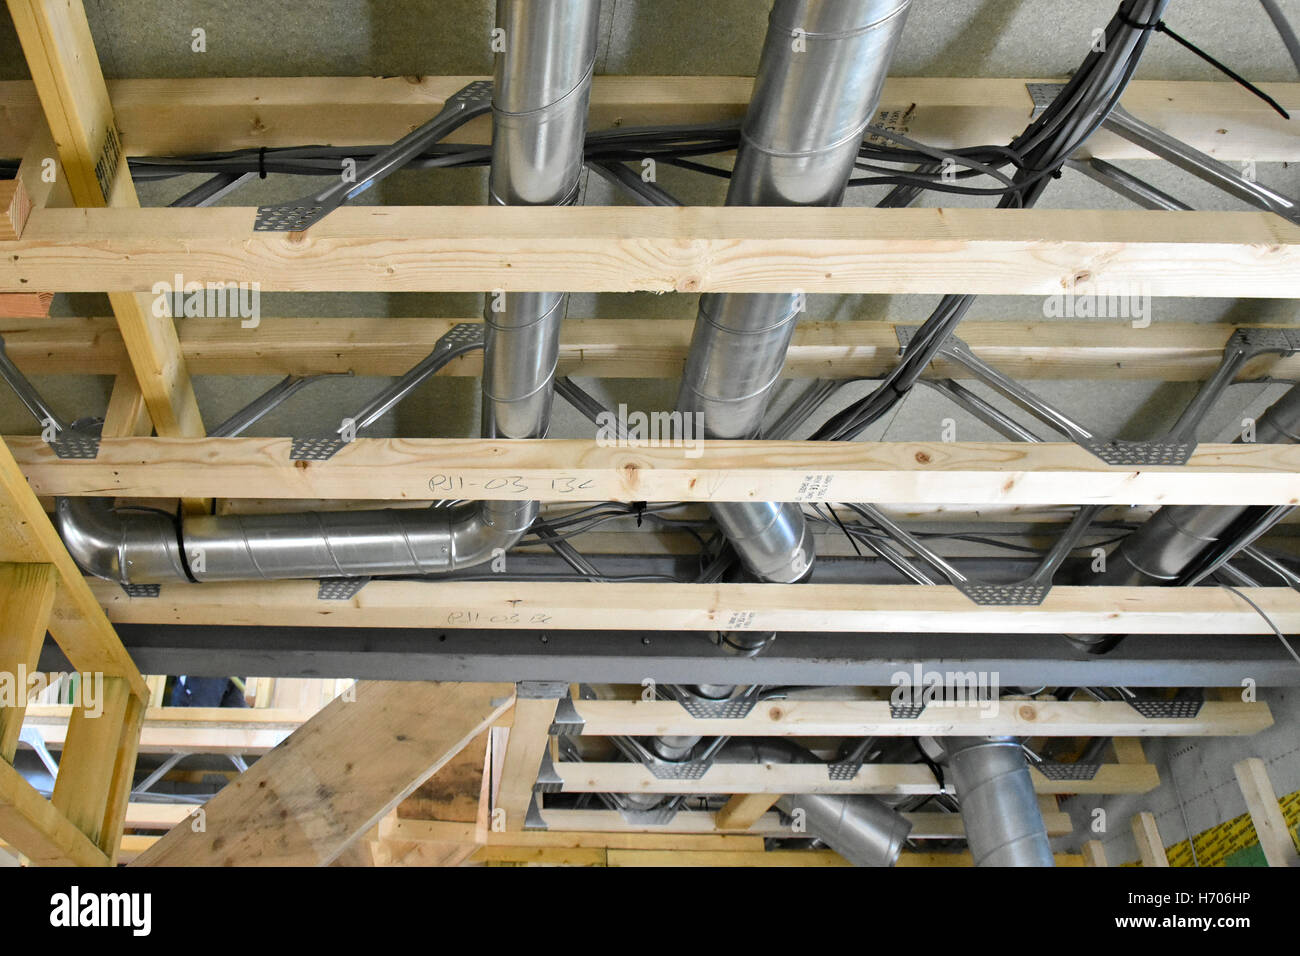 Interior of new UK energy efficient Passive House showing building materials & ventilation trunking installed - Stock Image